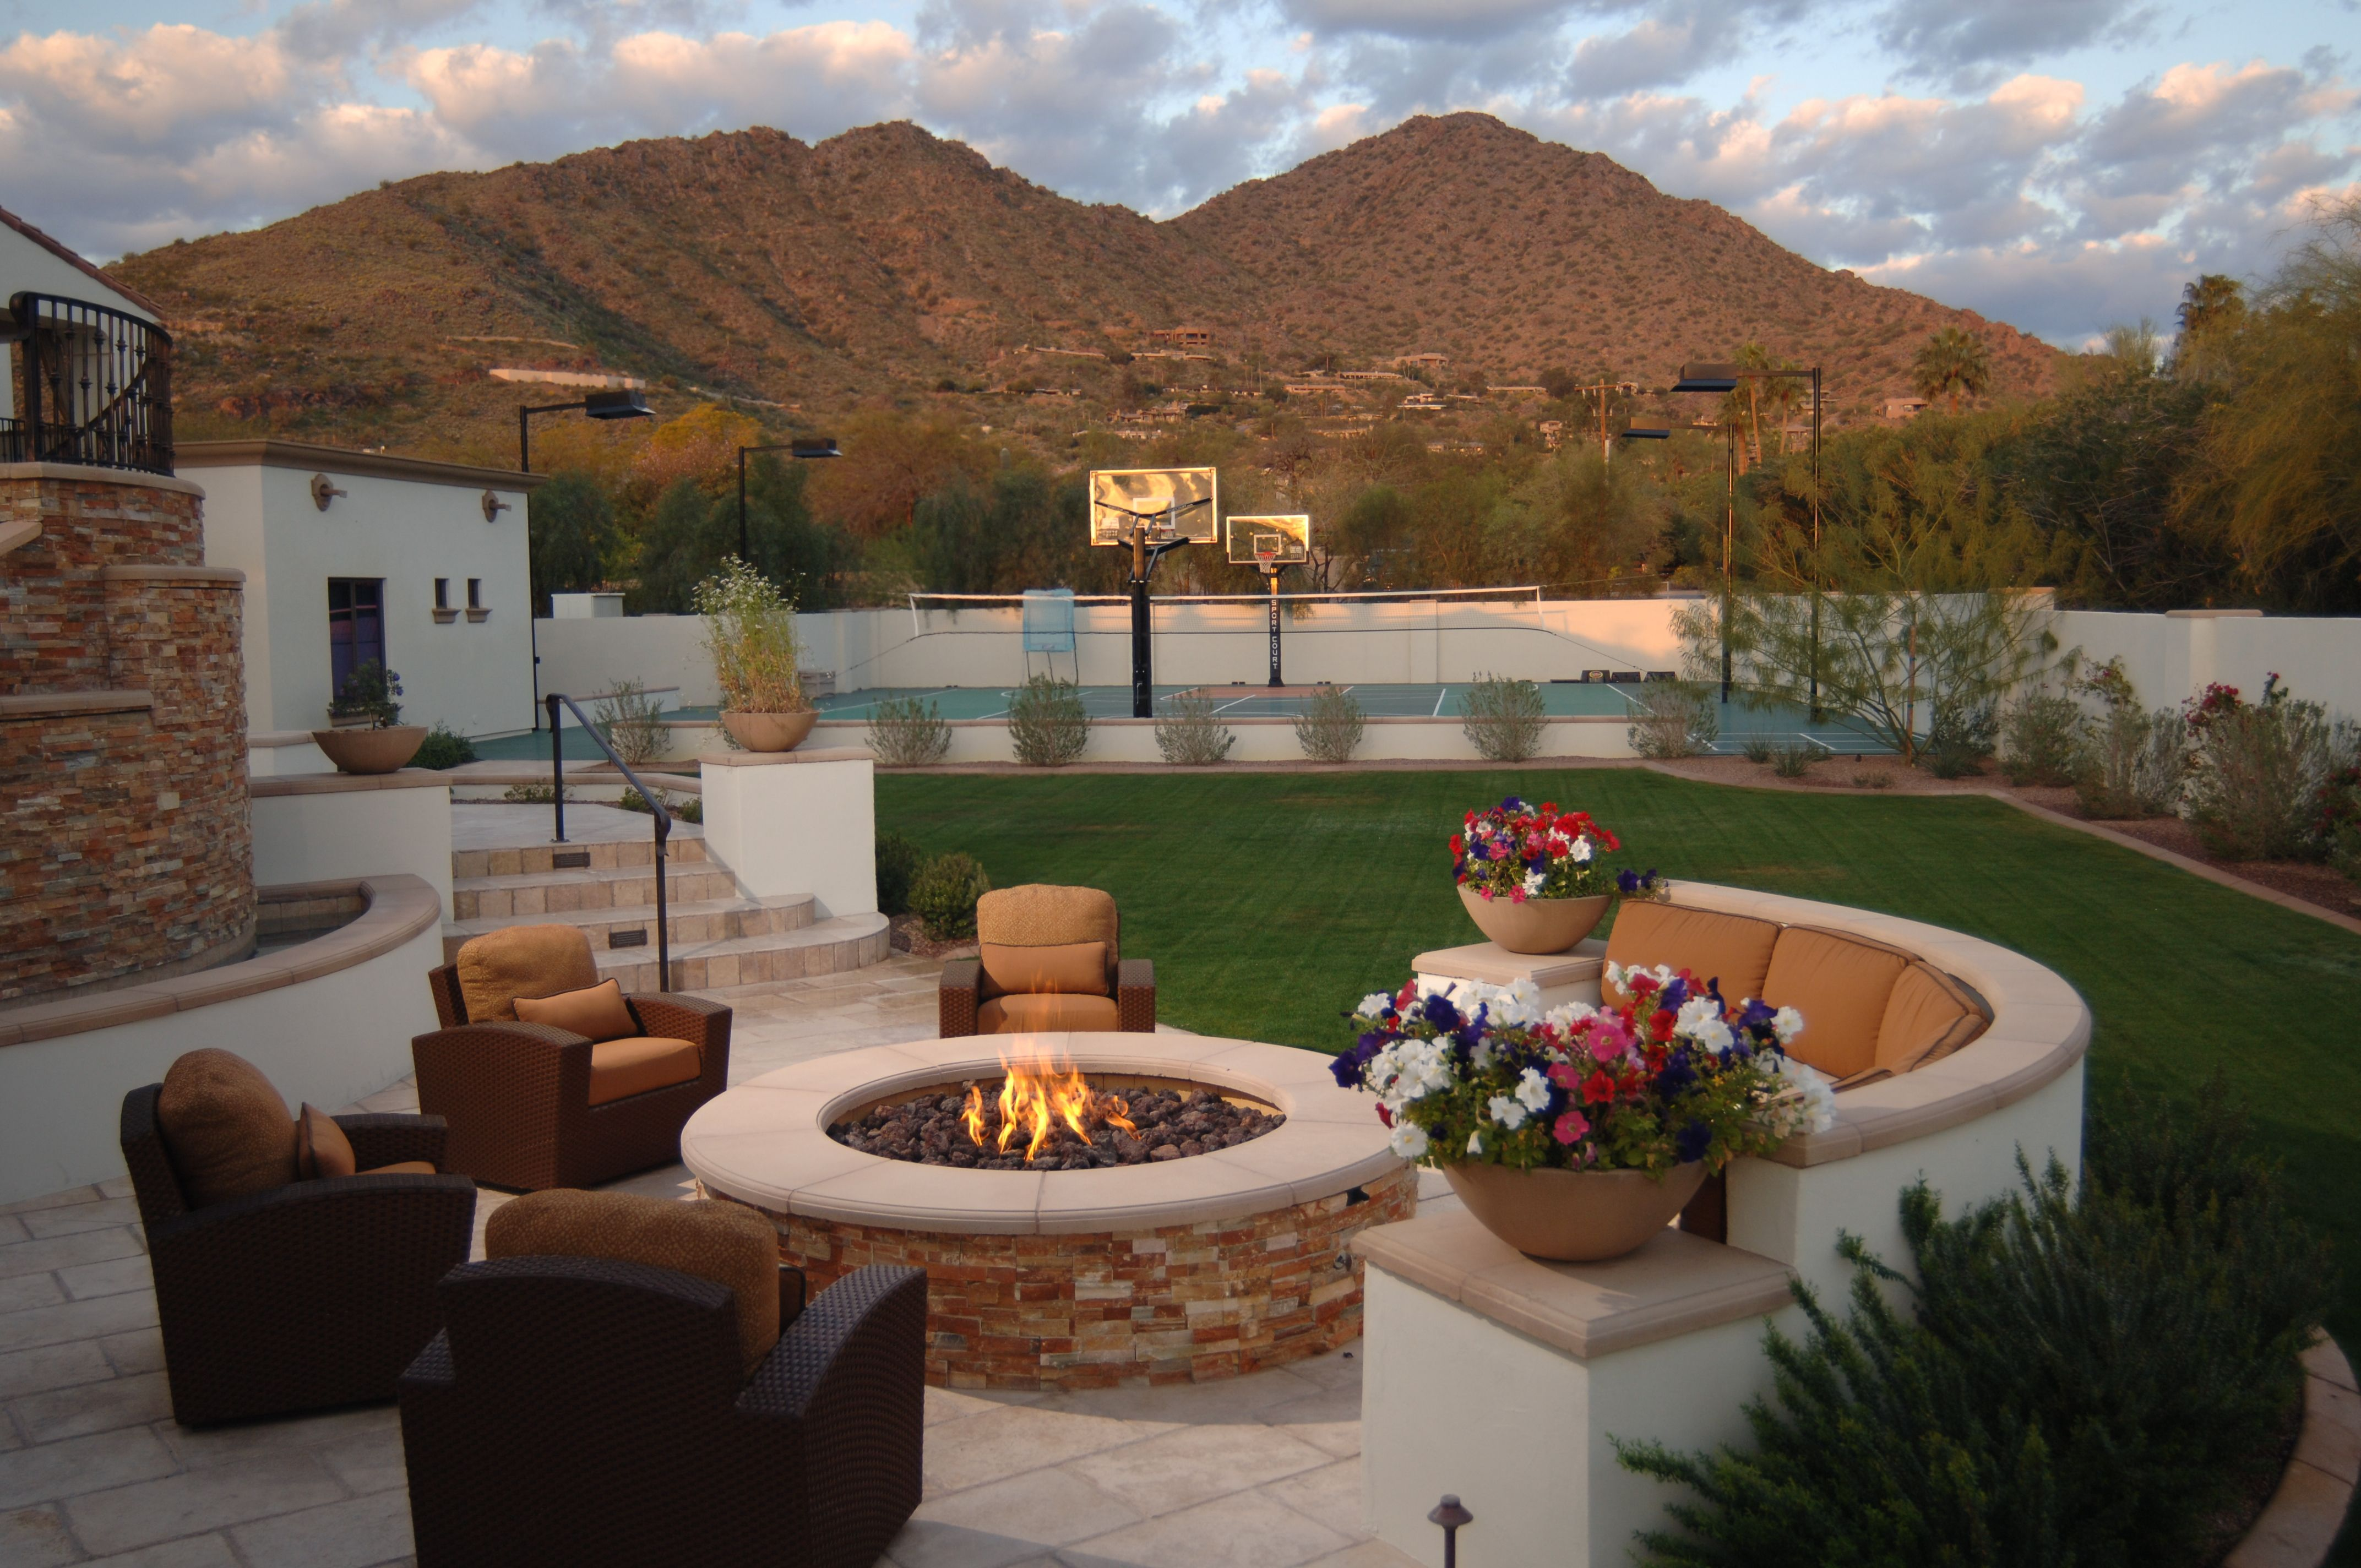 Dream Backyard With Fire Pit And Basketball Court Just Needs A Pool On The Other Side Arizona Backyard Desert Backyard Budget Backyard